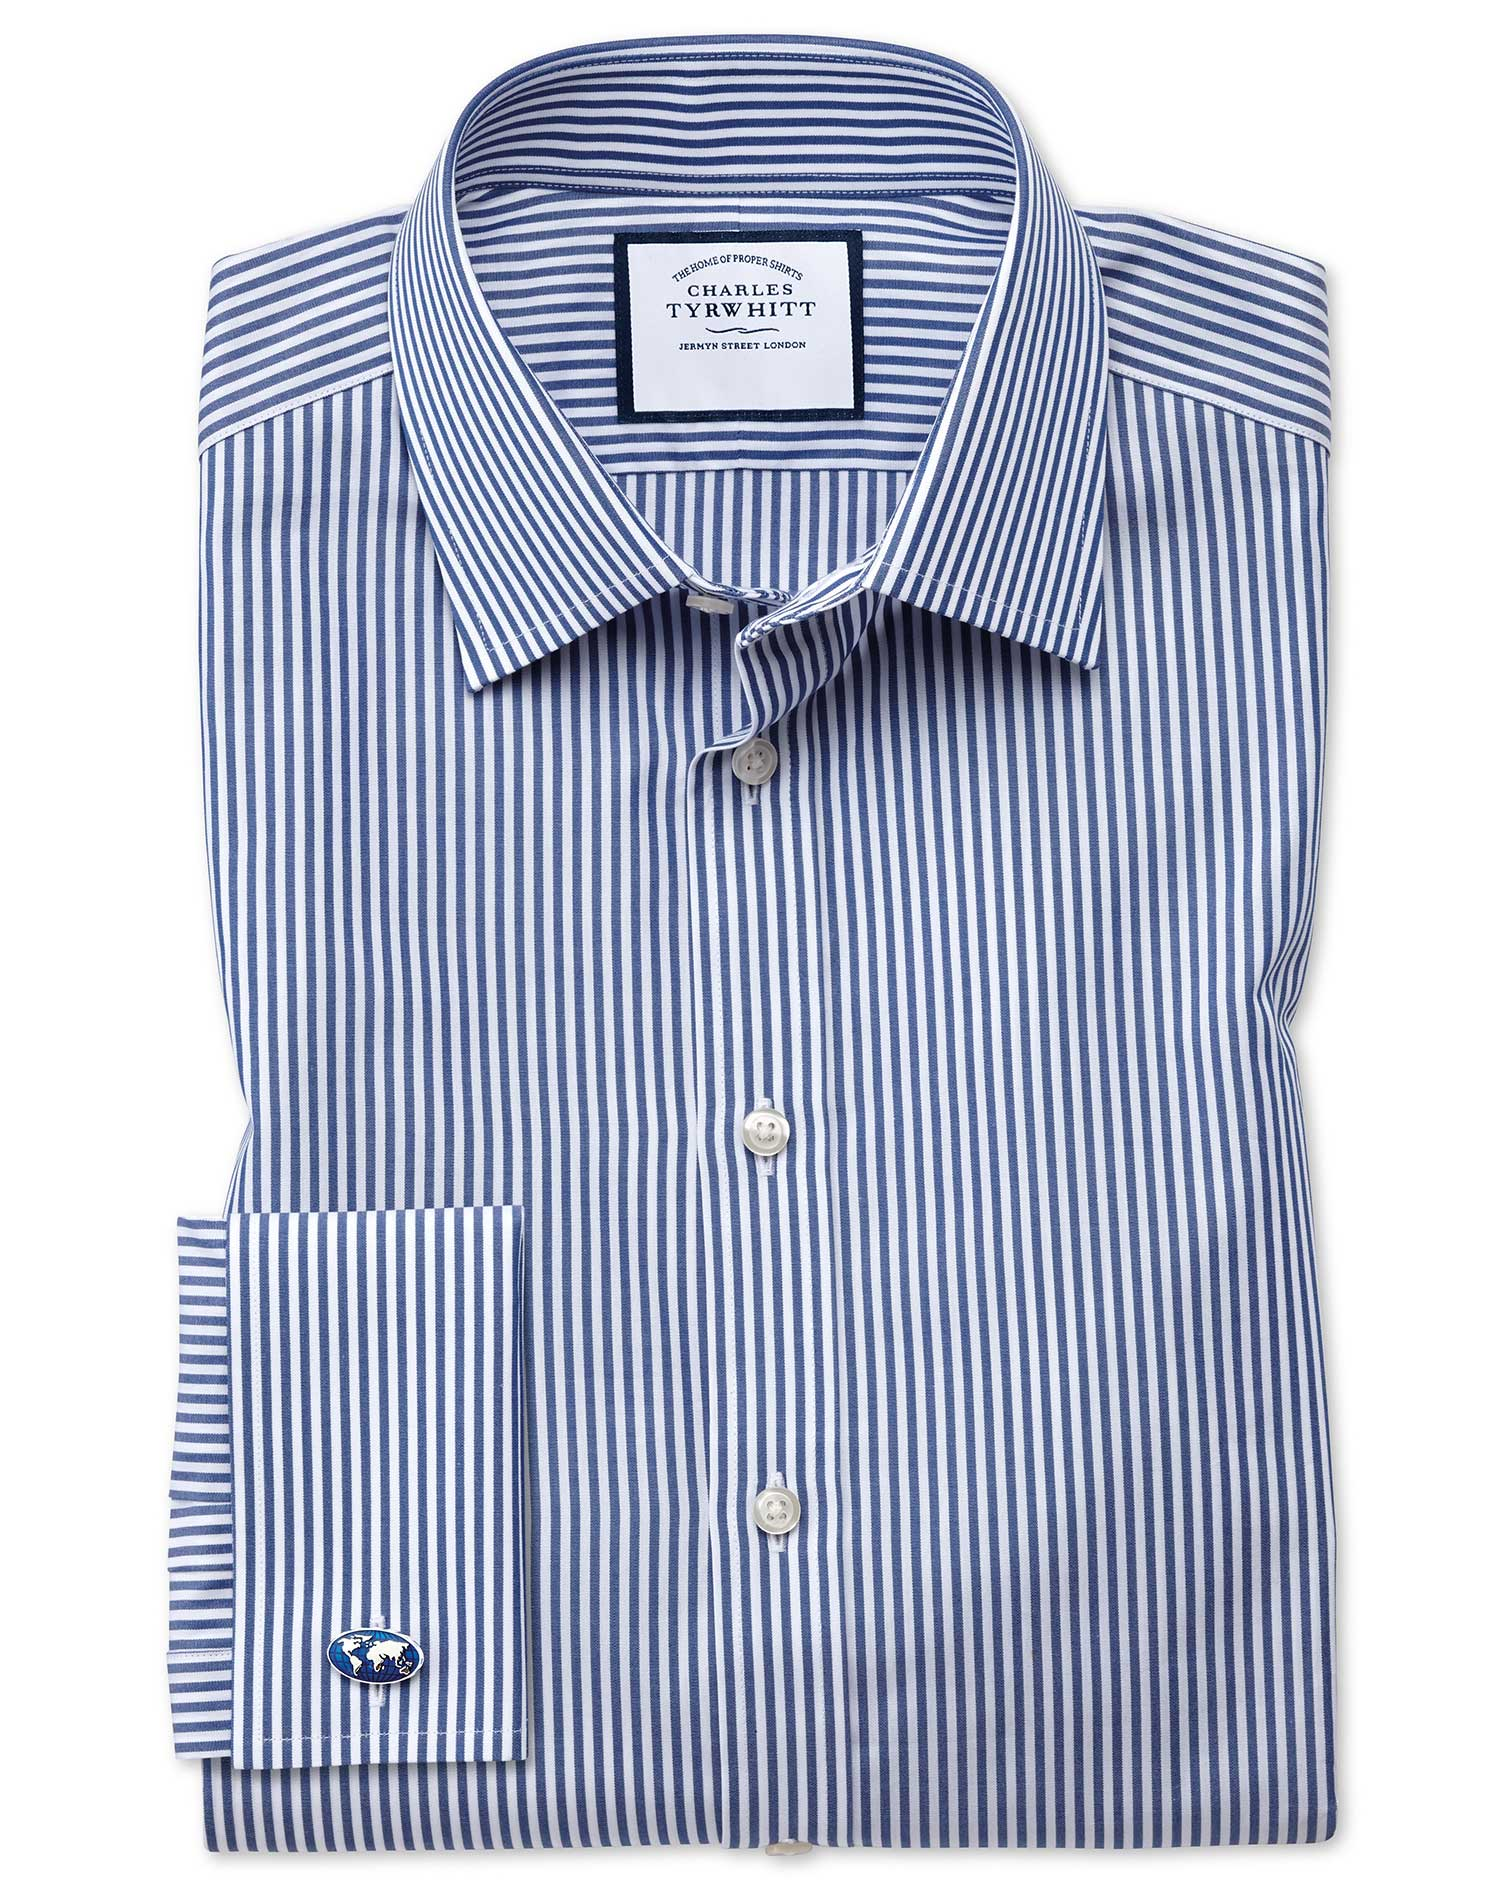 Extra Slim Fit Bengal Stripe Navy Blue Cotton Formal Shirt Single Cuff Size 14.5/32 by Charles Tyrwh